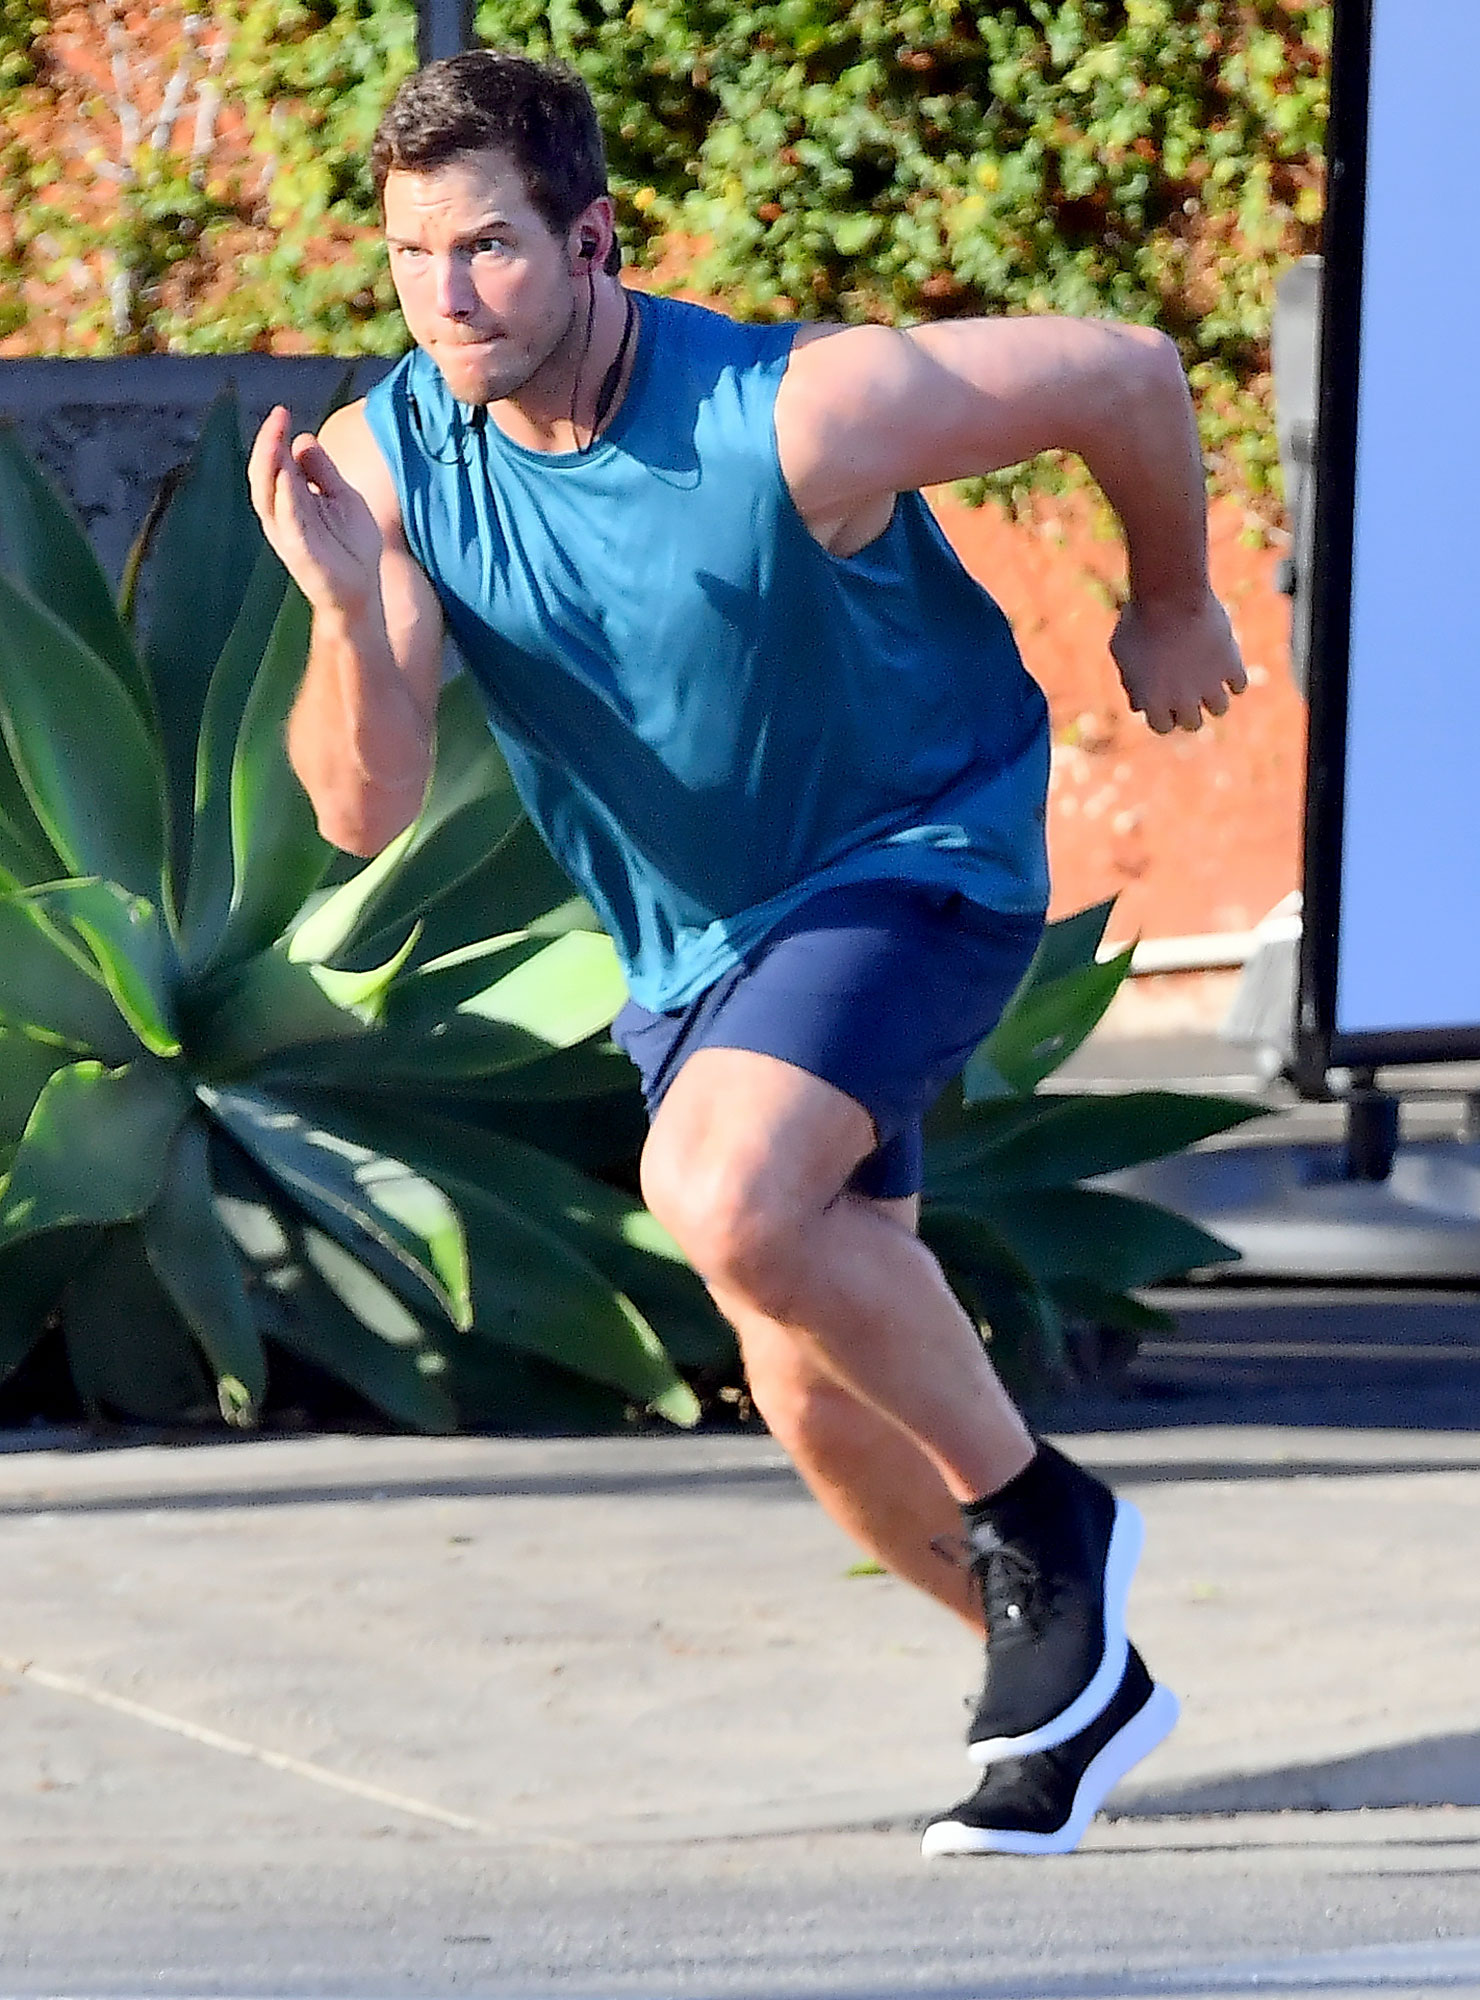 EXCLUSIVE: Chris Pratt is seen racing  a horse as he films a scene for an unknown project in Los Angeles